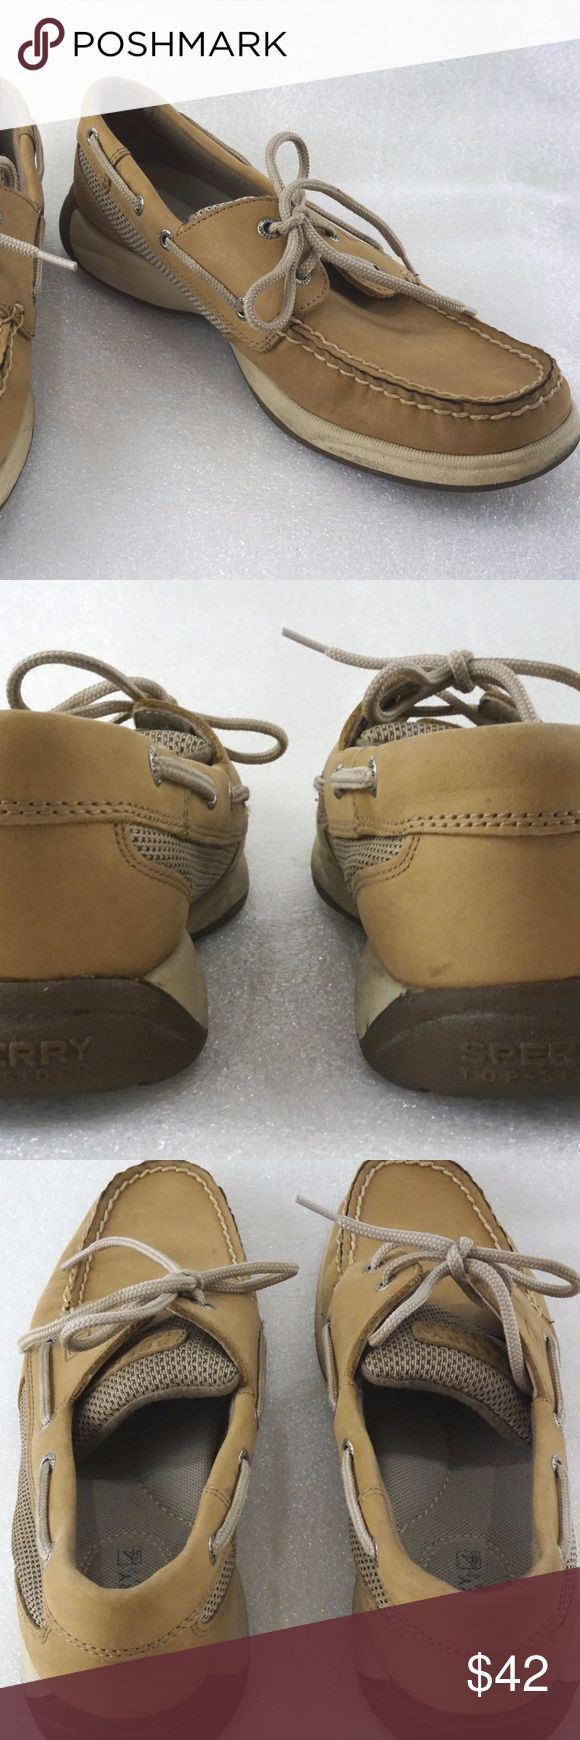 """Tan Boat Shoes Sperry Fire Fish 8M Leather Womens For sale is a pair of Sperry Topsider boat shoes from the Fire Fish line. Has some minor scuffs, insole and soles are in good condition. No major issues. Insoles are clean and in great condition.   Size: 8M  Measurements Length: 10.25"""" measured from back of sole to front of sole Width: 3.75"""" measured at widest part of soles  I'll ship within 24 hours  Thank you Sperry Shoes"""